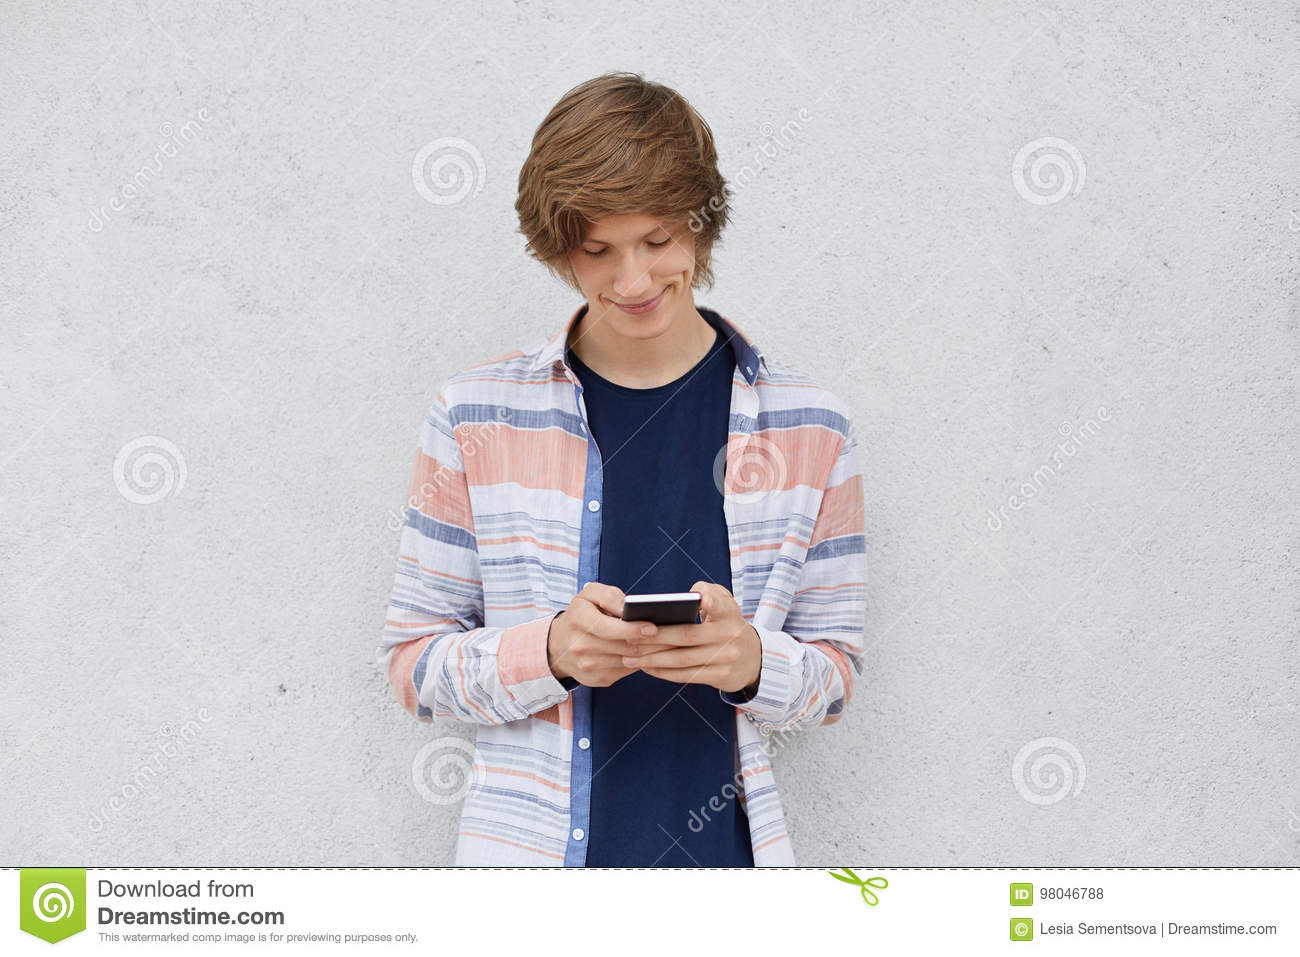 Fashionable teenage boy wearing shirt, holding cell phone in hands, messaging with friends or playing games online using free inte